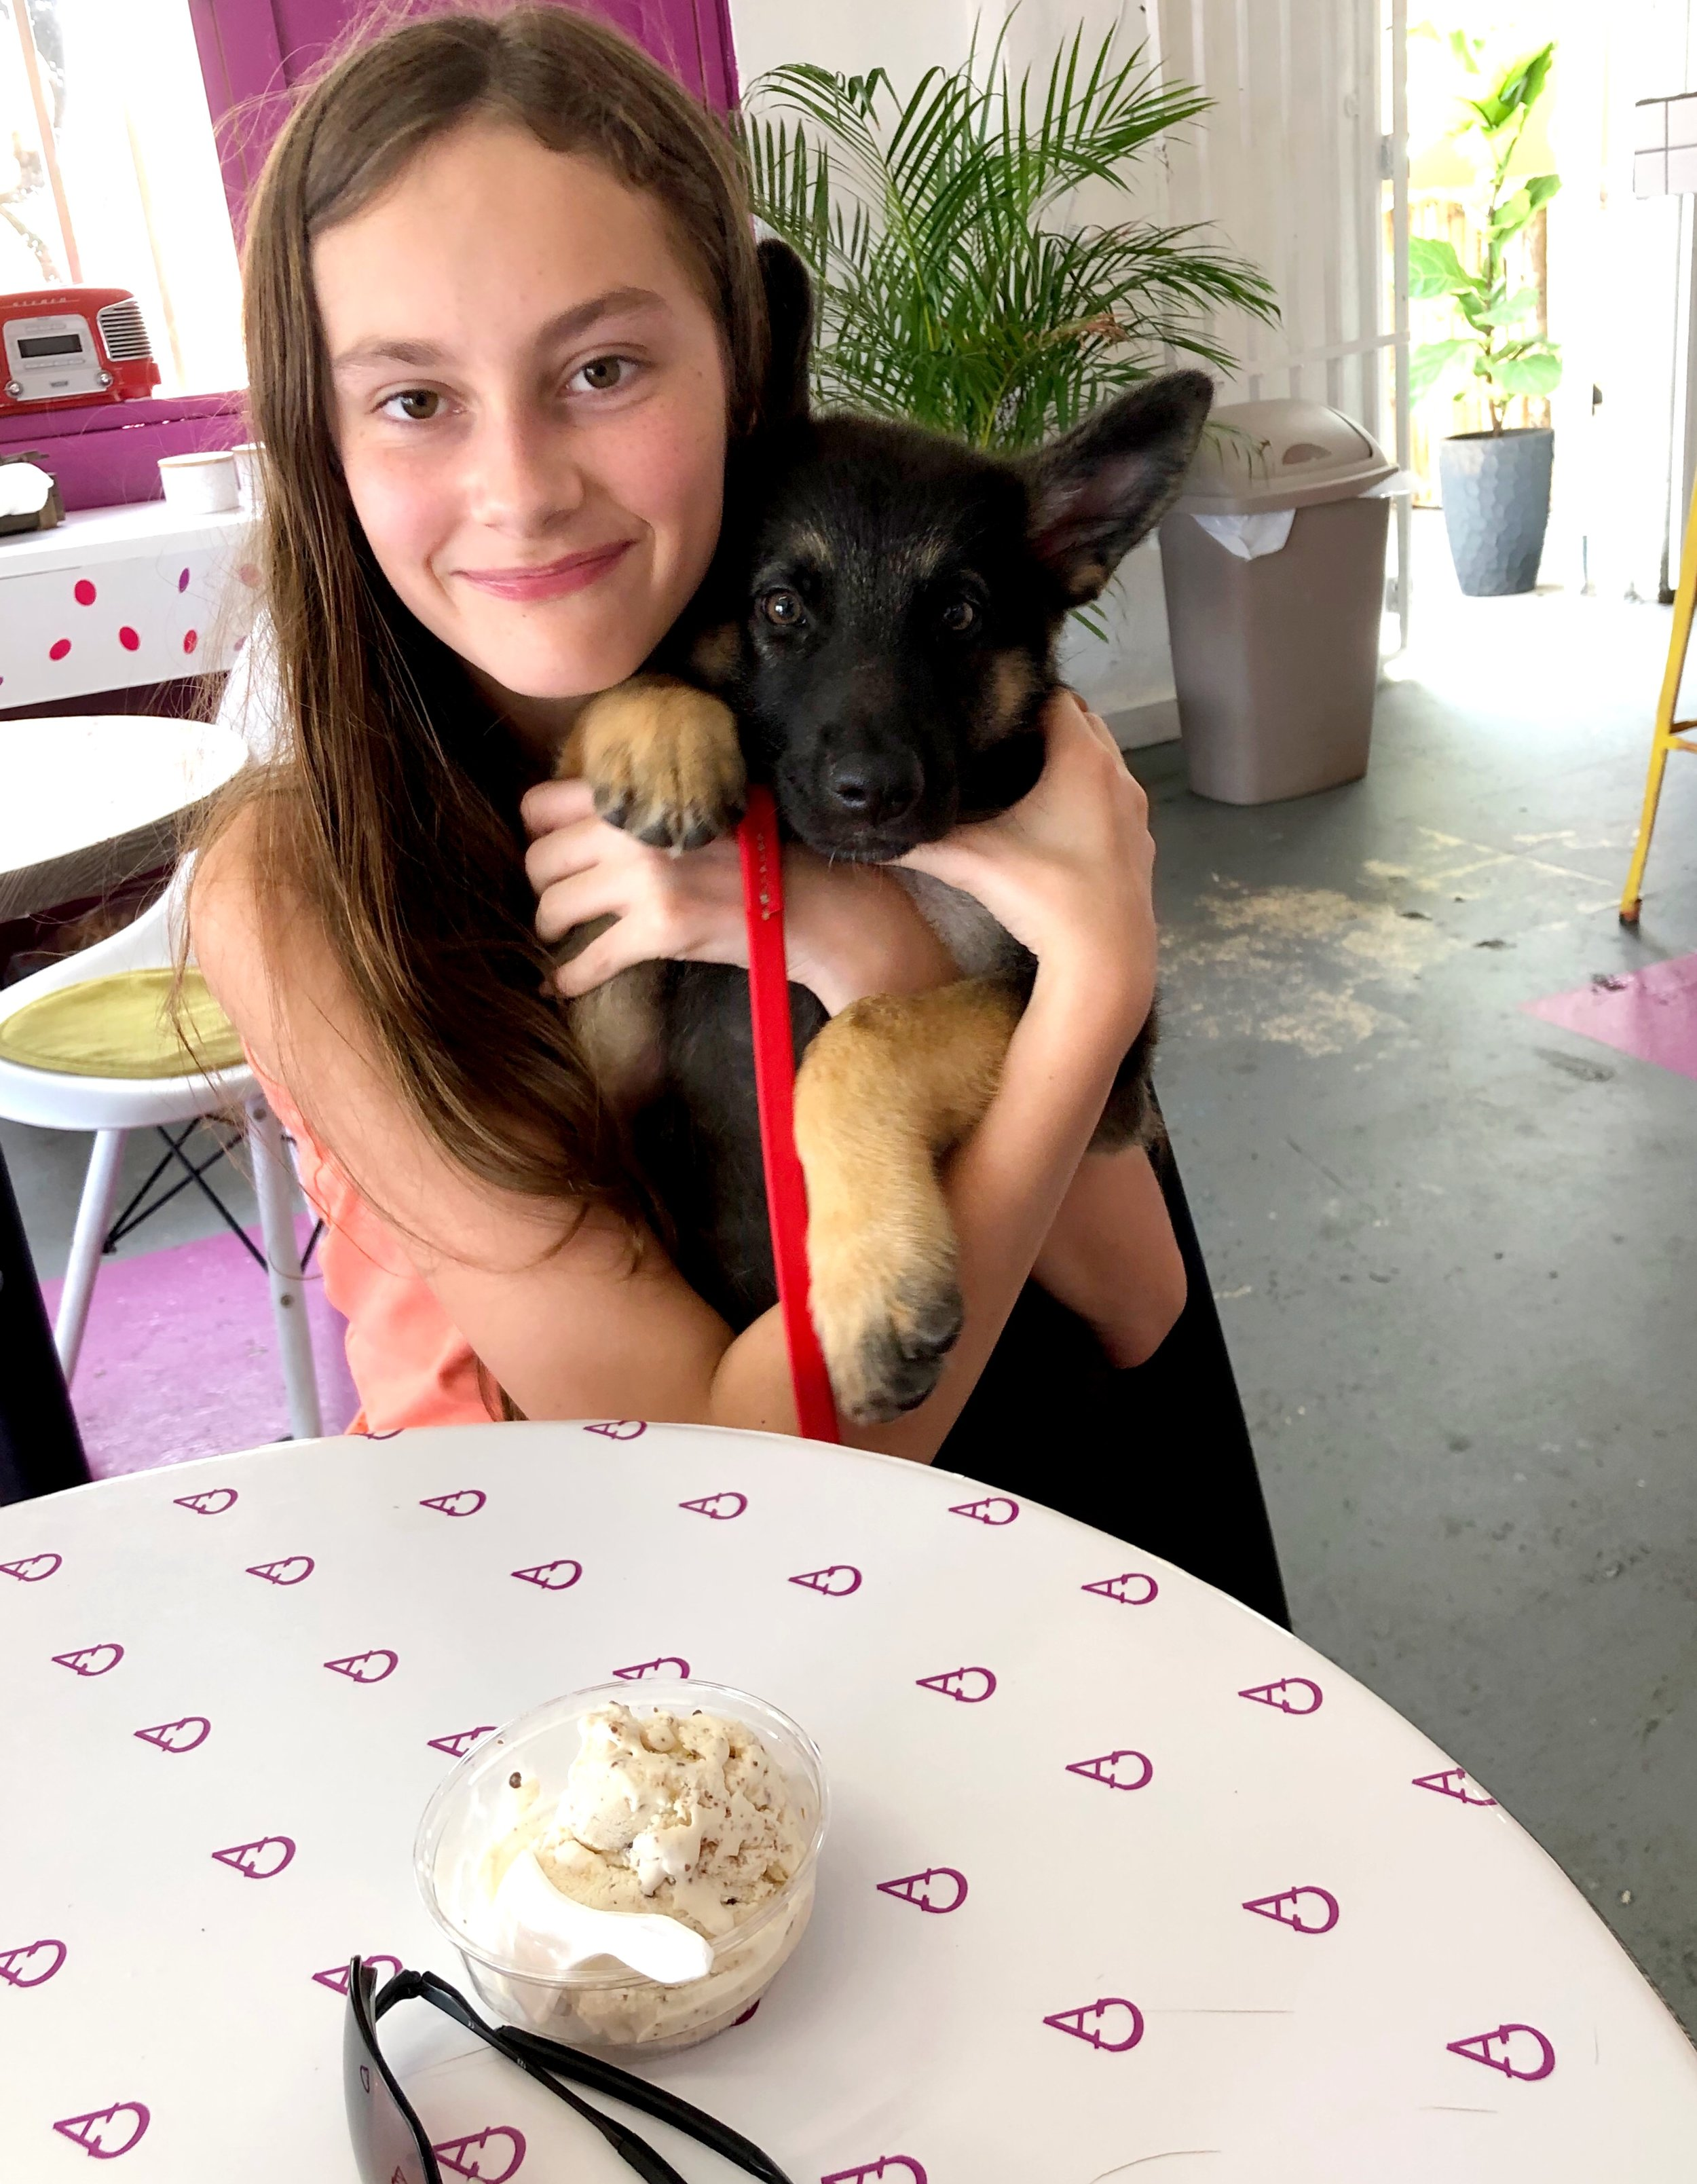 Bill and Renée's grandaughter enjoying some artisanal ice cream at Peccas. Livy their new german shepherd puppy had a taste too!